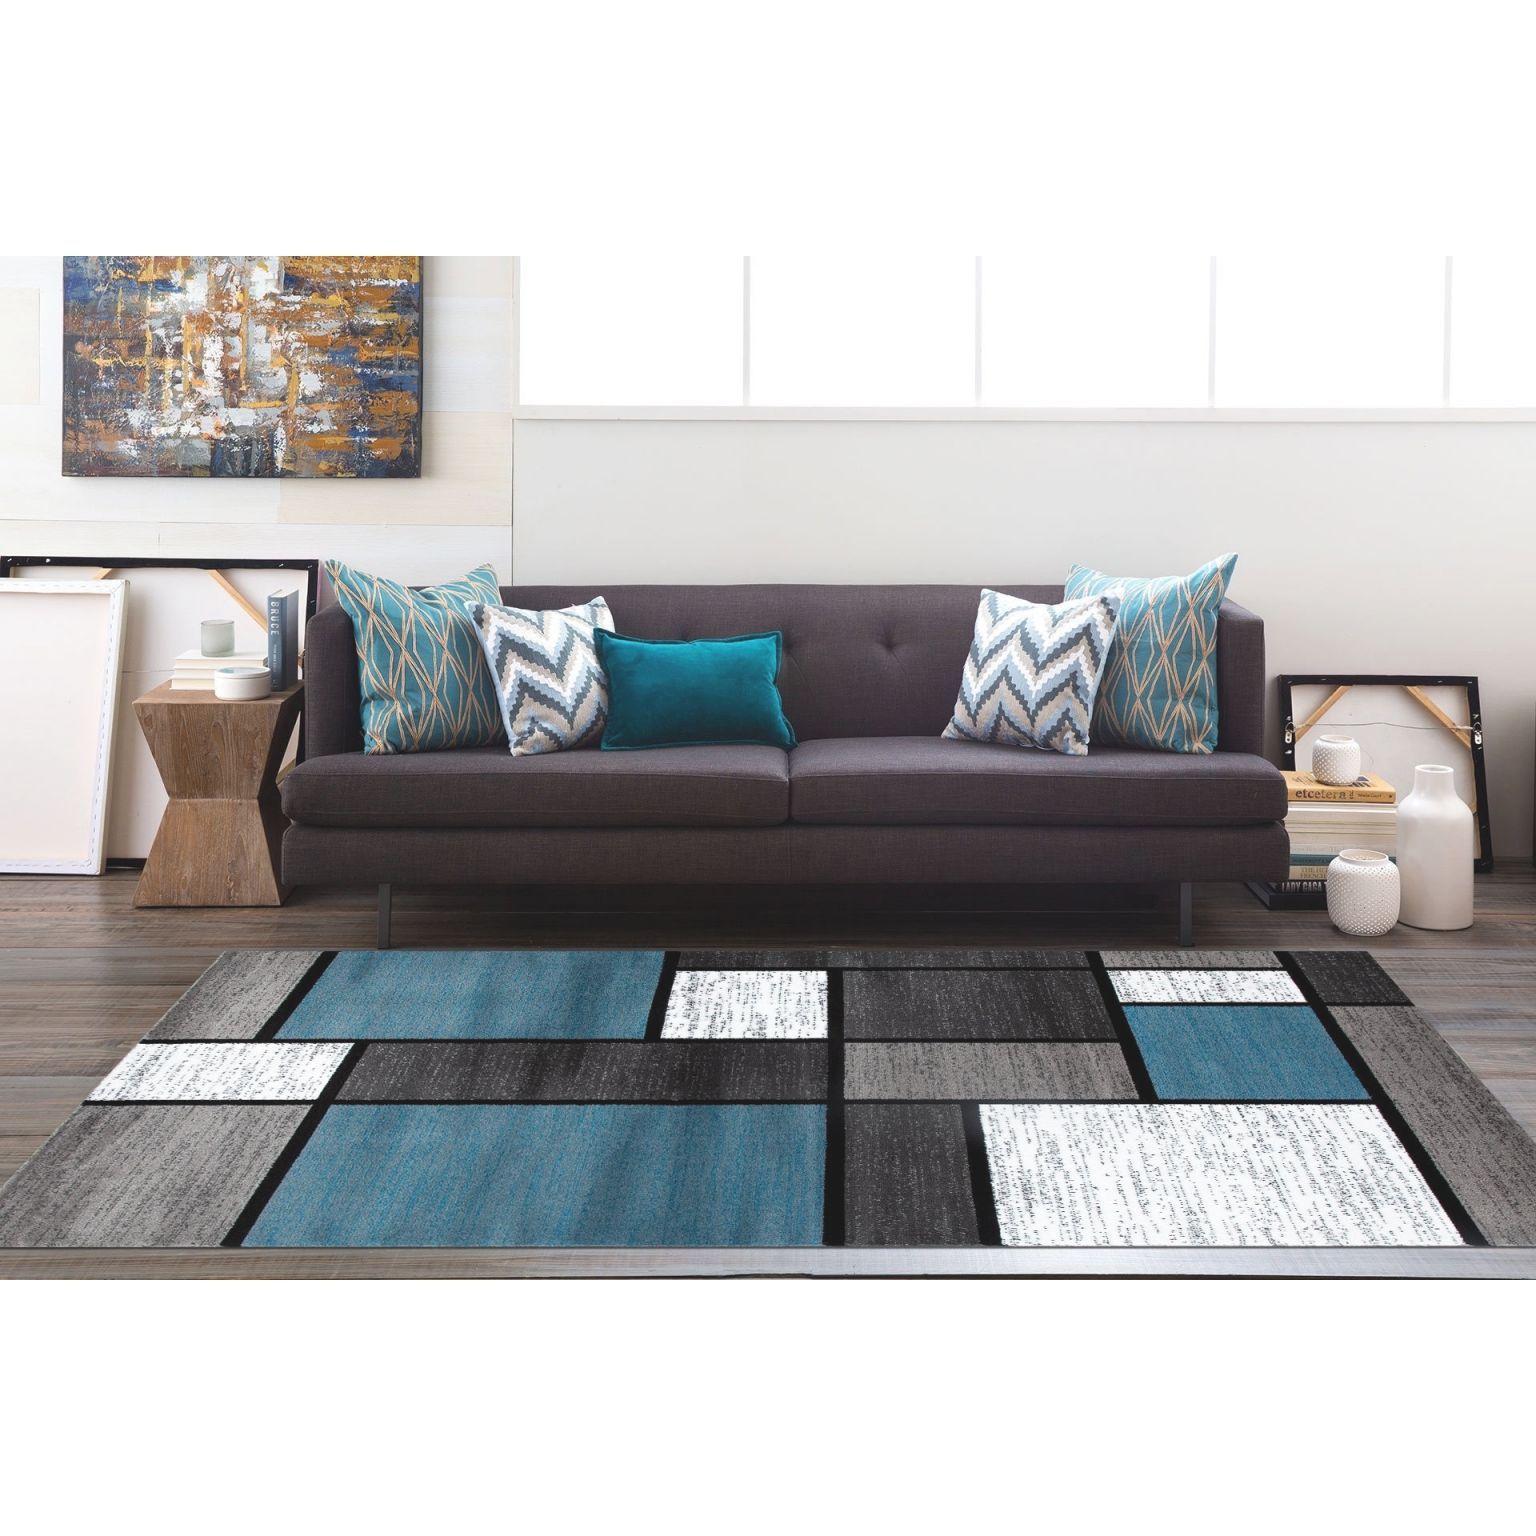 "Osti Modern Boxes Blue/ Black/ Grey Contemporary Area Rug - 5'3"" X 7'3"" intended for 12+ Awesome Gallery For Blue And Grey Living Room"